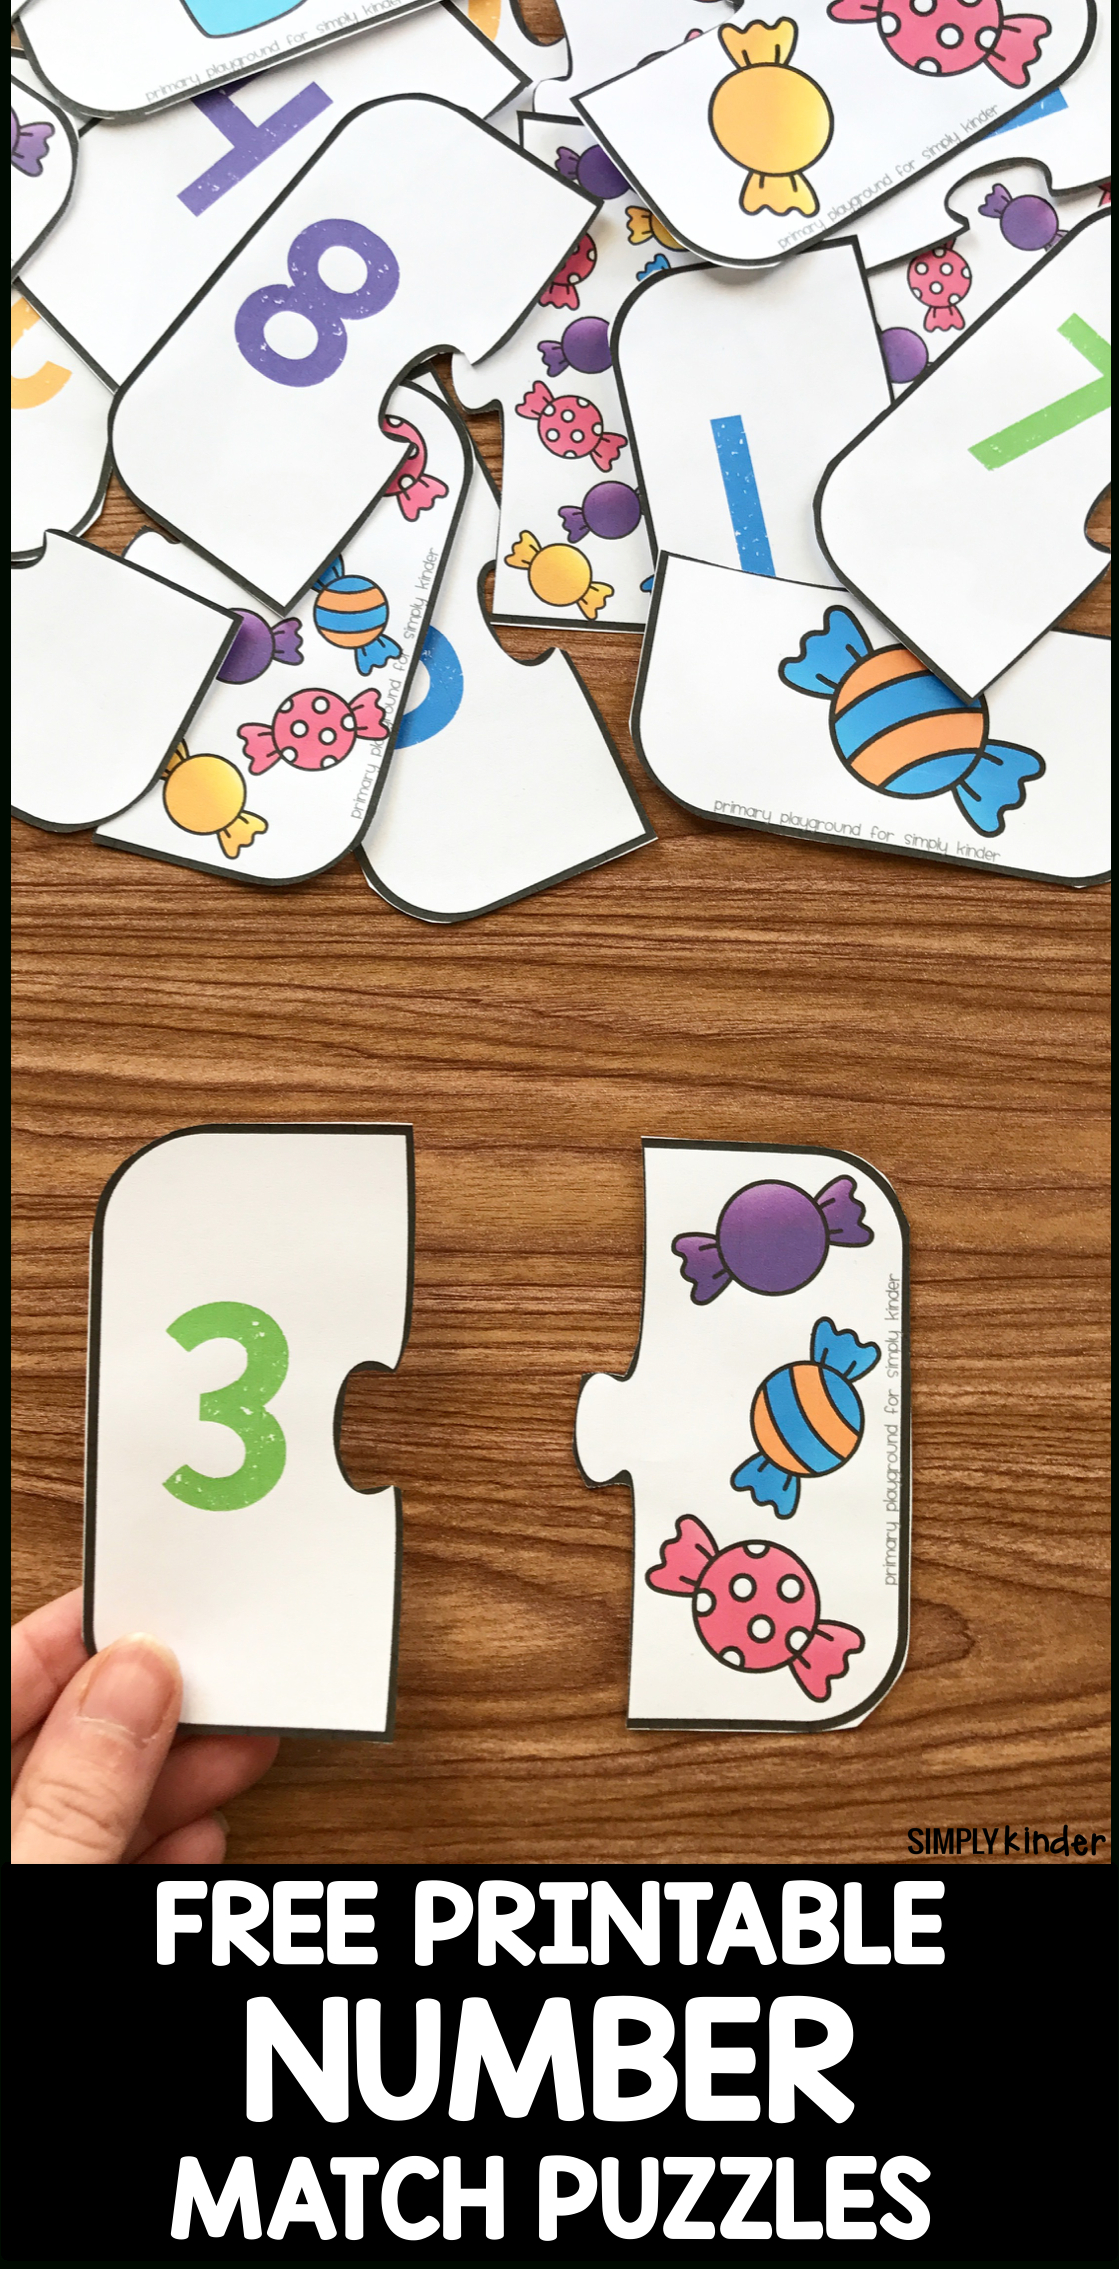 Free Printable Number Match Puzzles - Simply Kinder - Printable Puzzle For Kindergarten